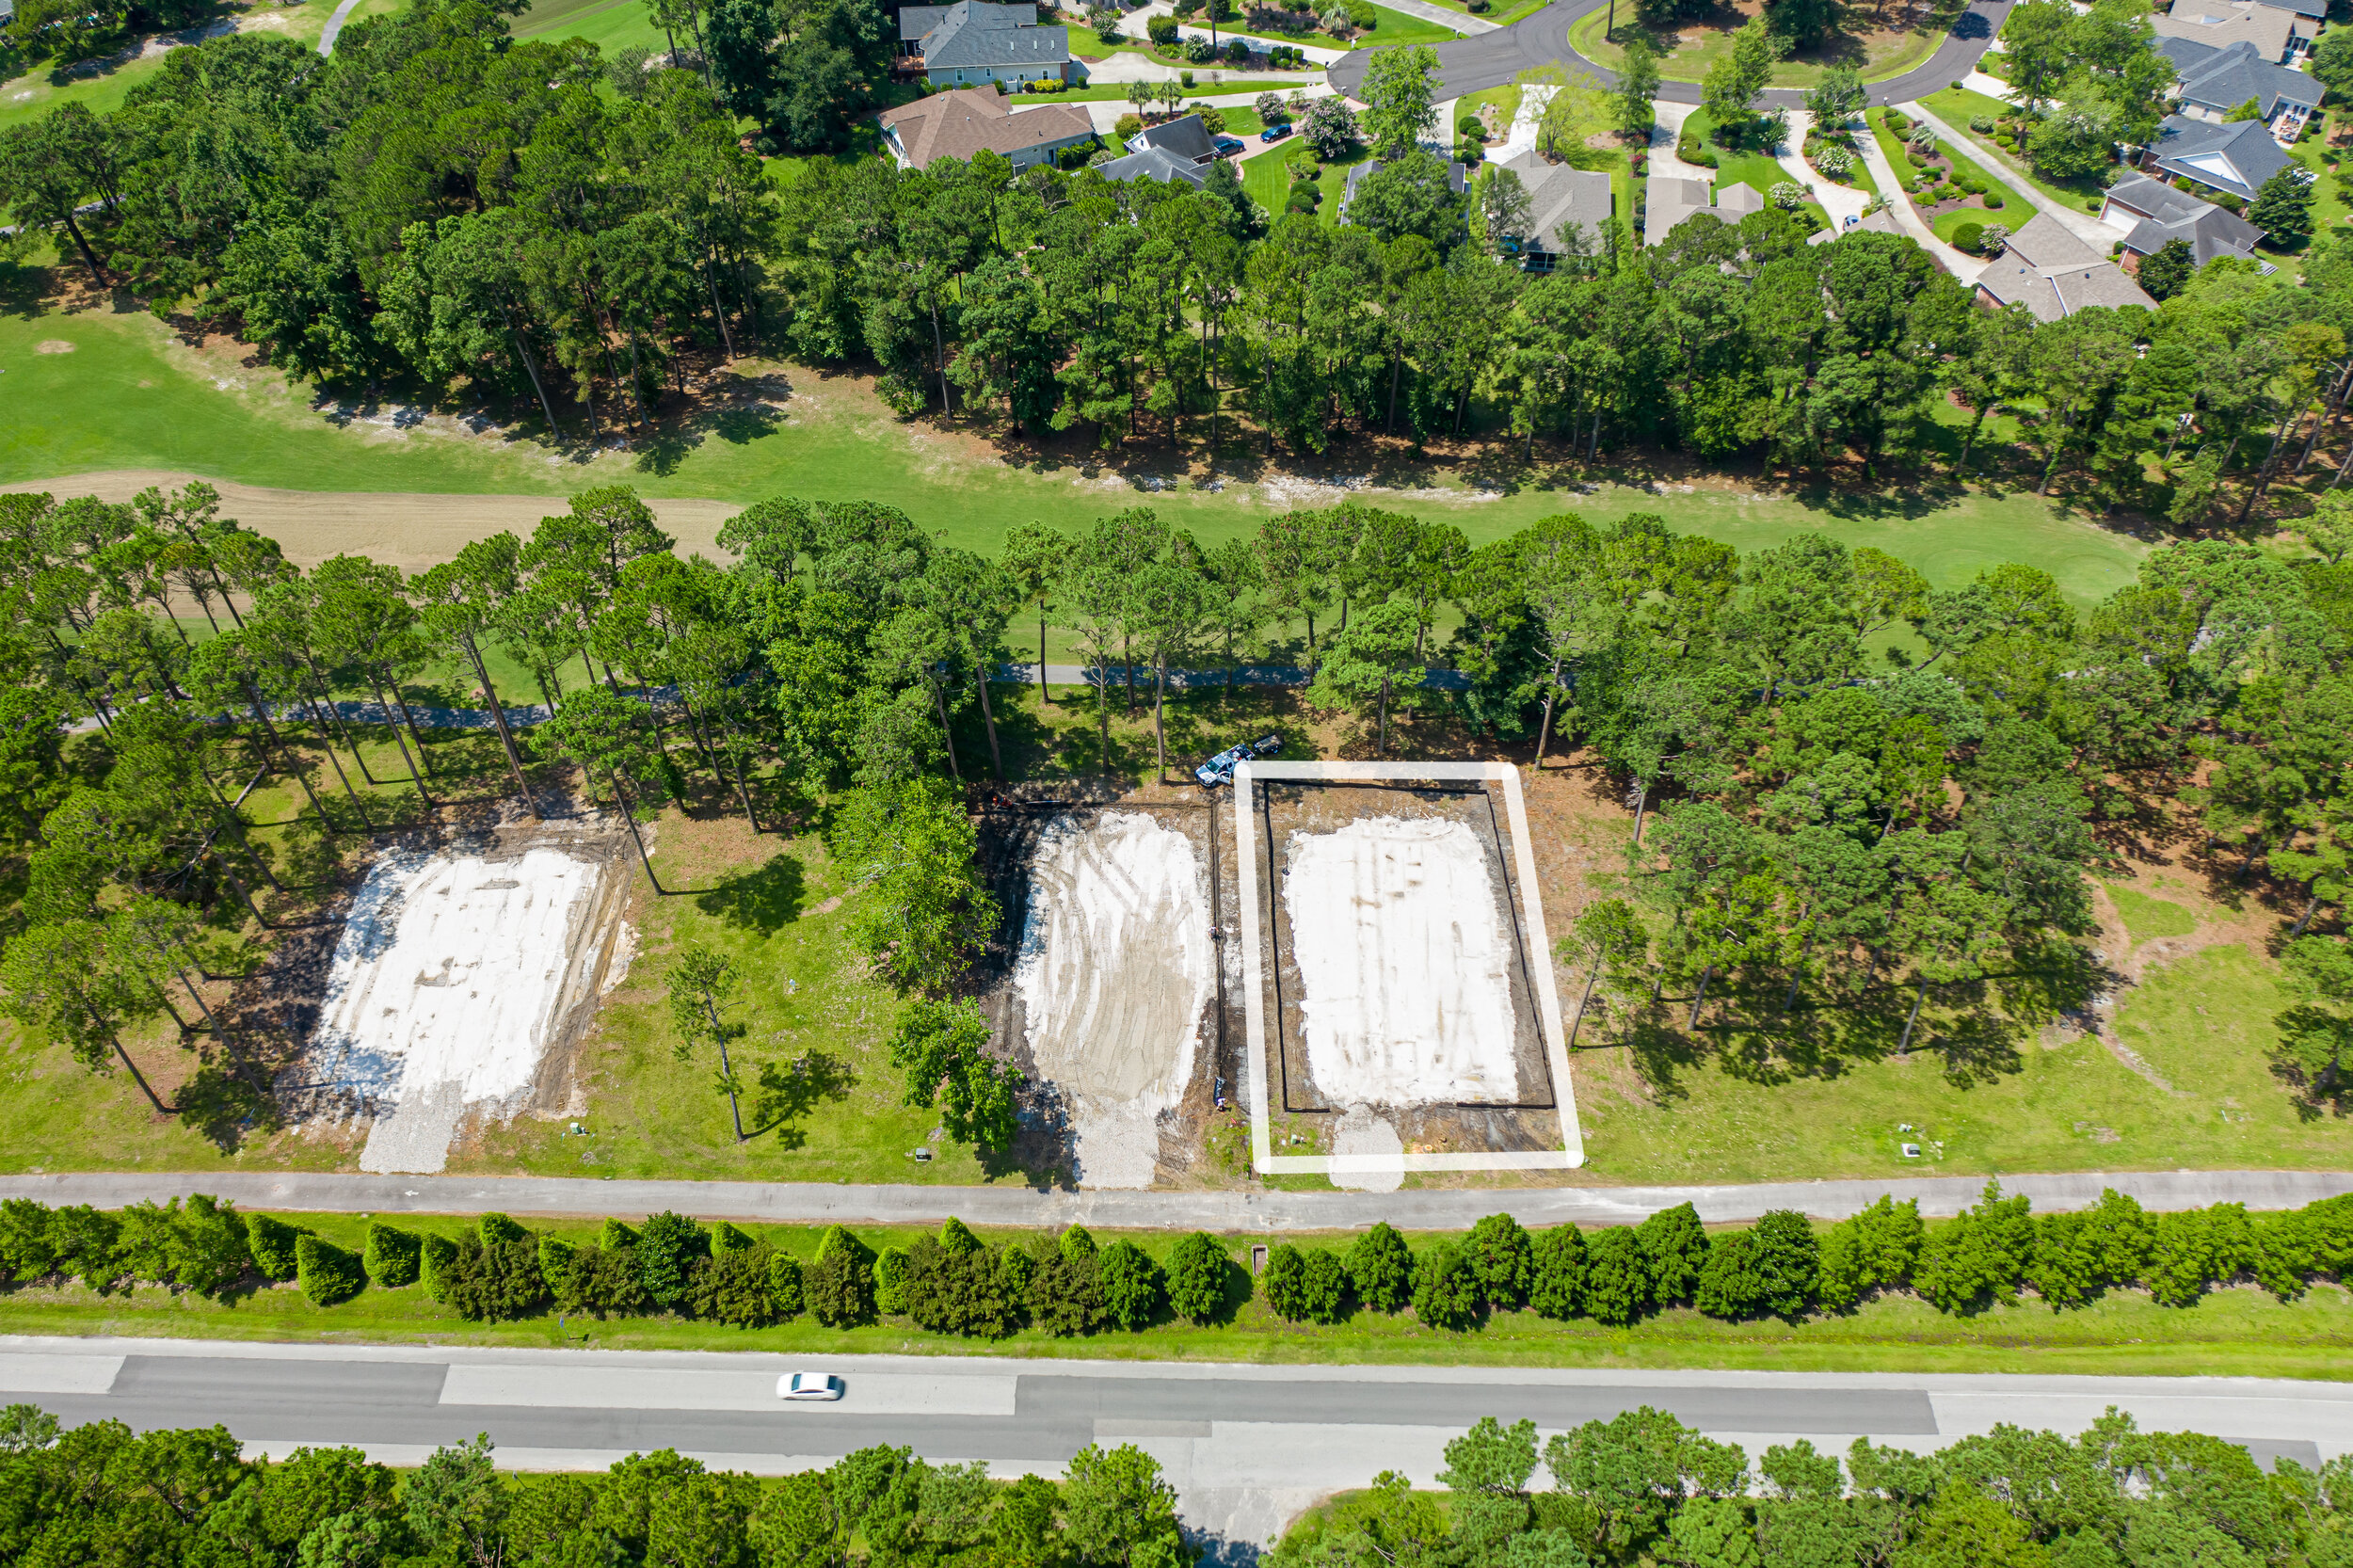 Aerial Photo of Lot 17 Prior to Construction